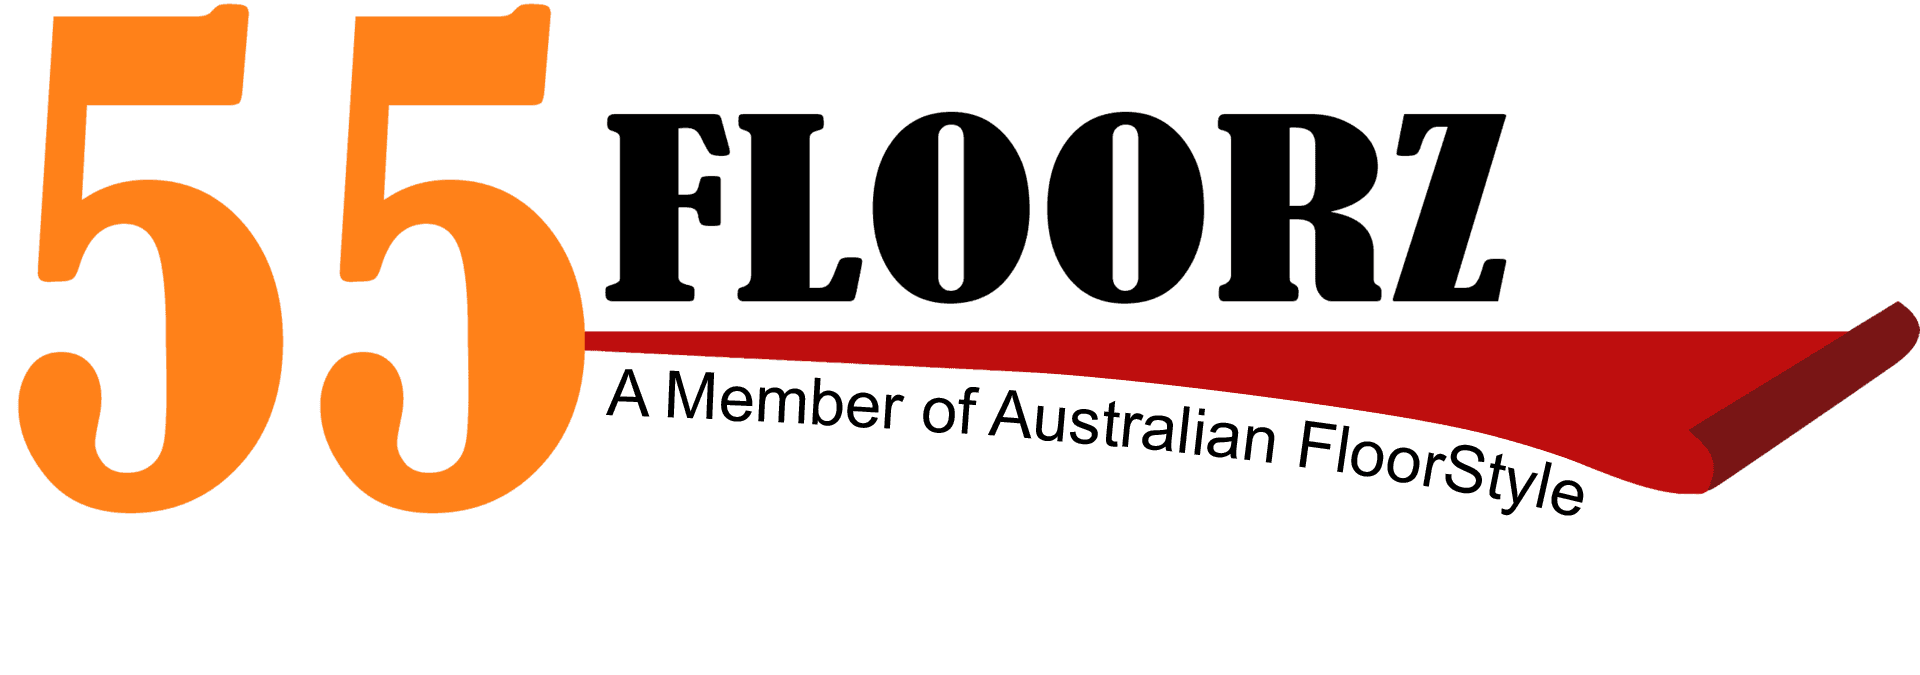 55 Floorz Carpet Installations Gold Coast Logo